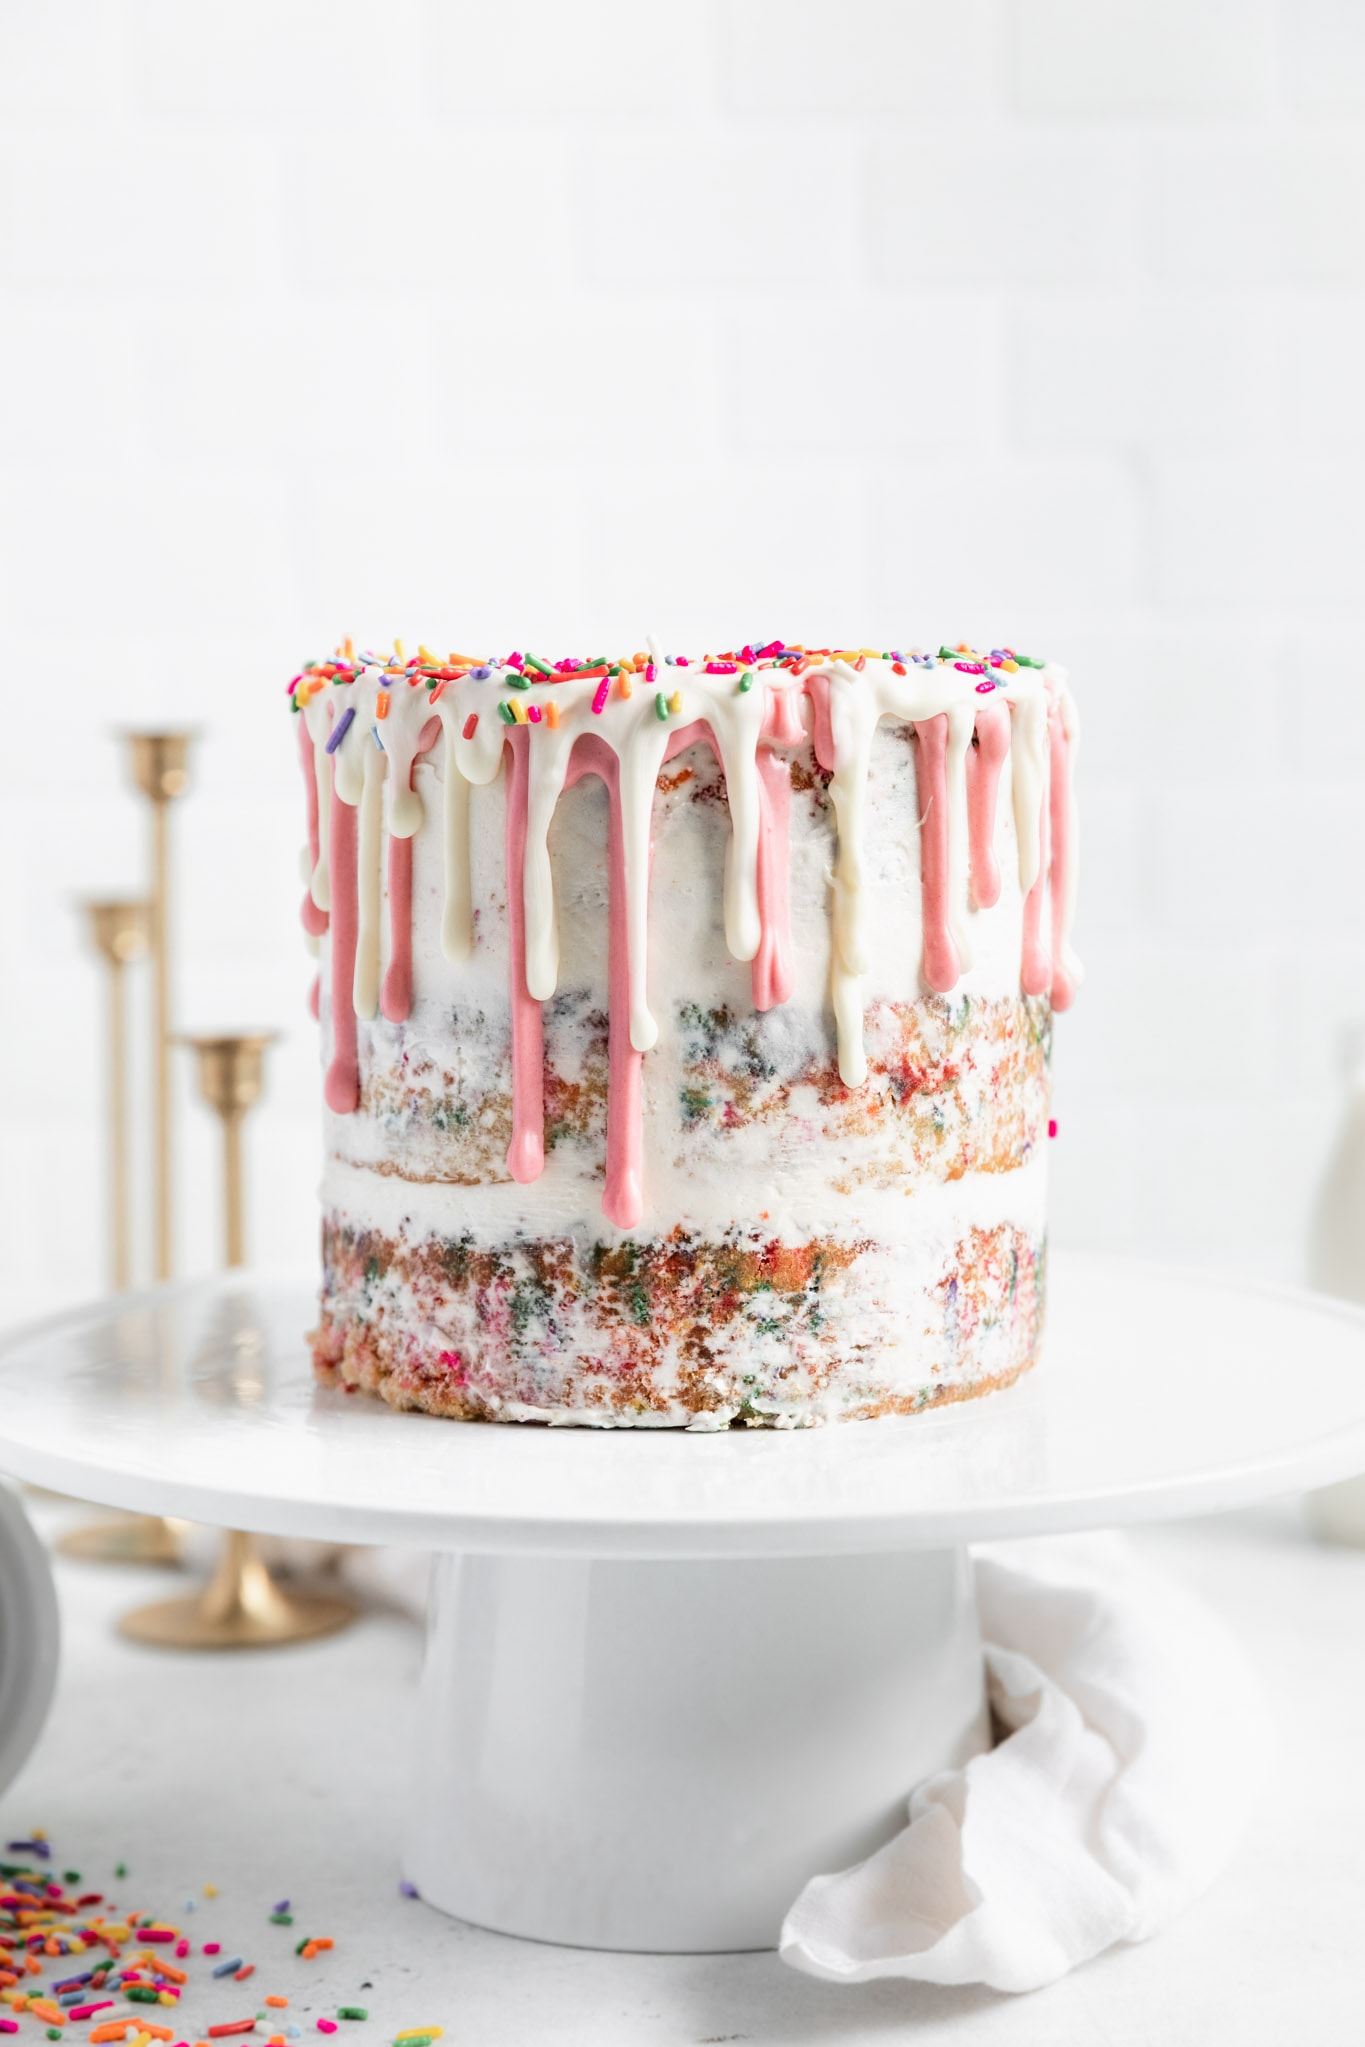 The best homemade funfetti cake recipe! Tastes even better than the pillsbury cake mix and makes the perfect birthday cake.